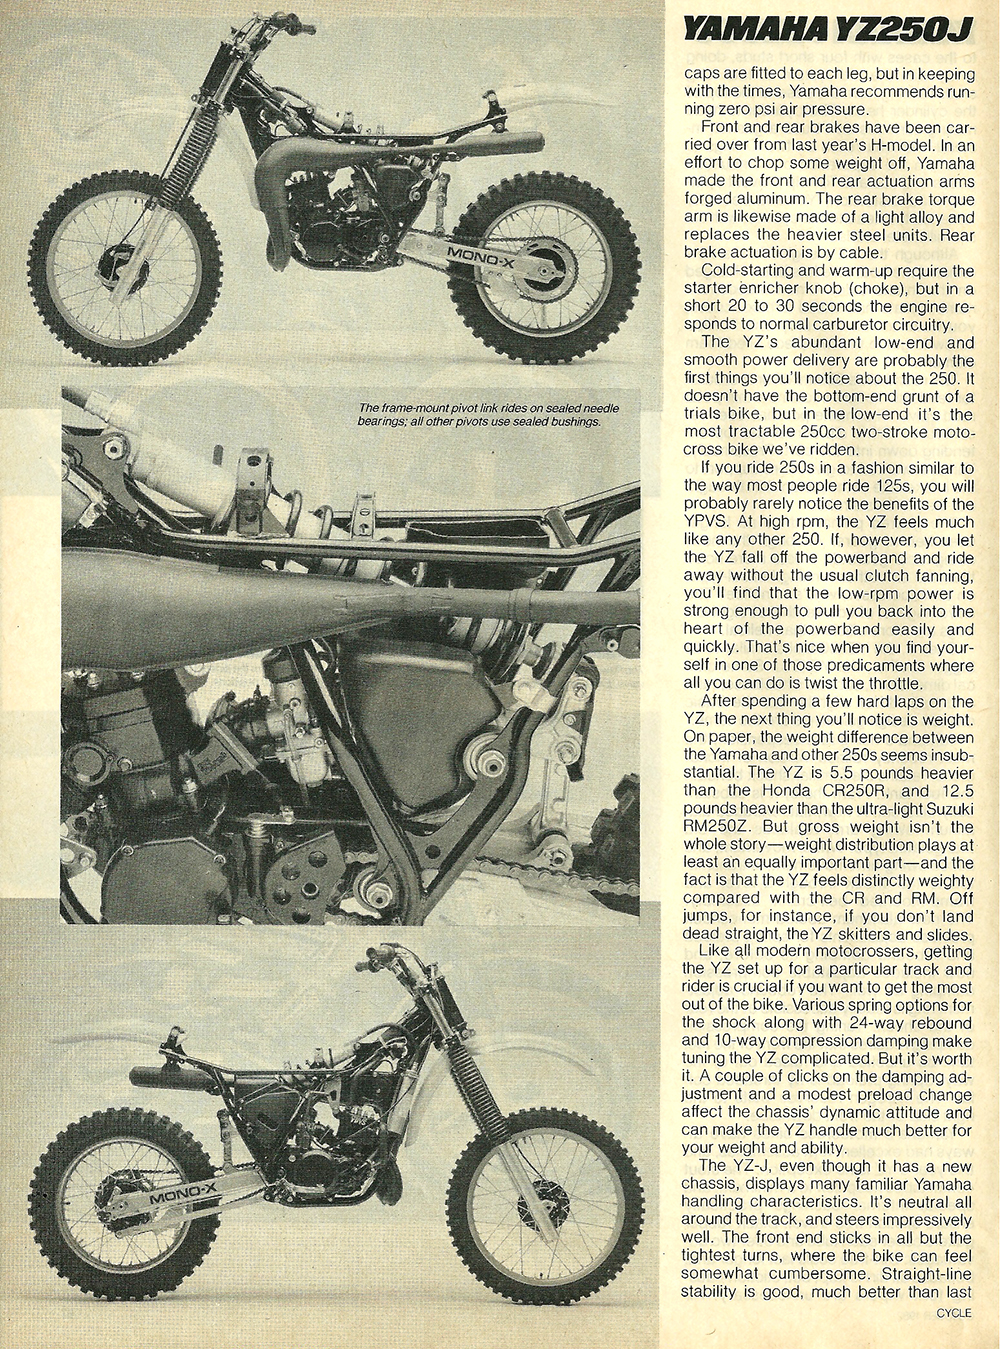 1982 Yamaha YZ250J road test 6.jpg